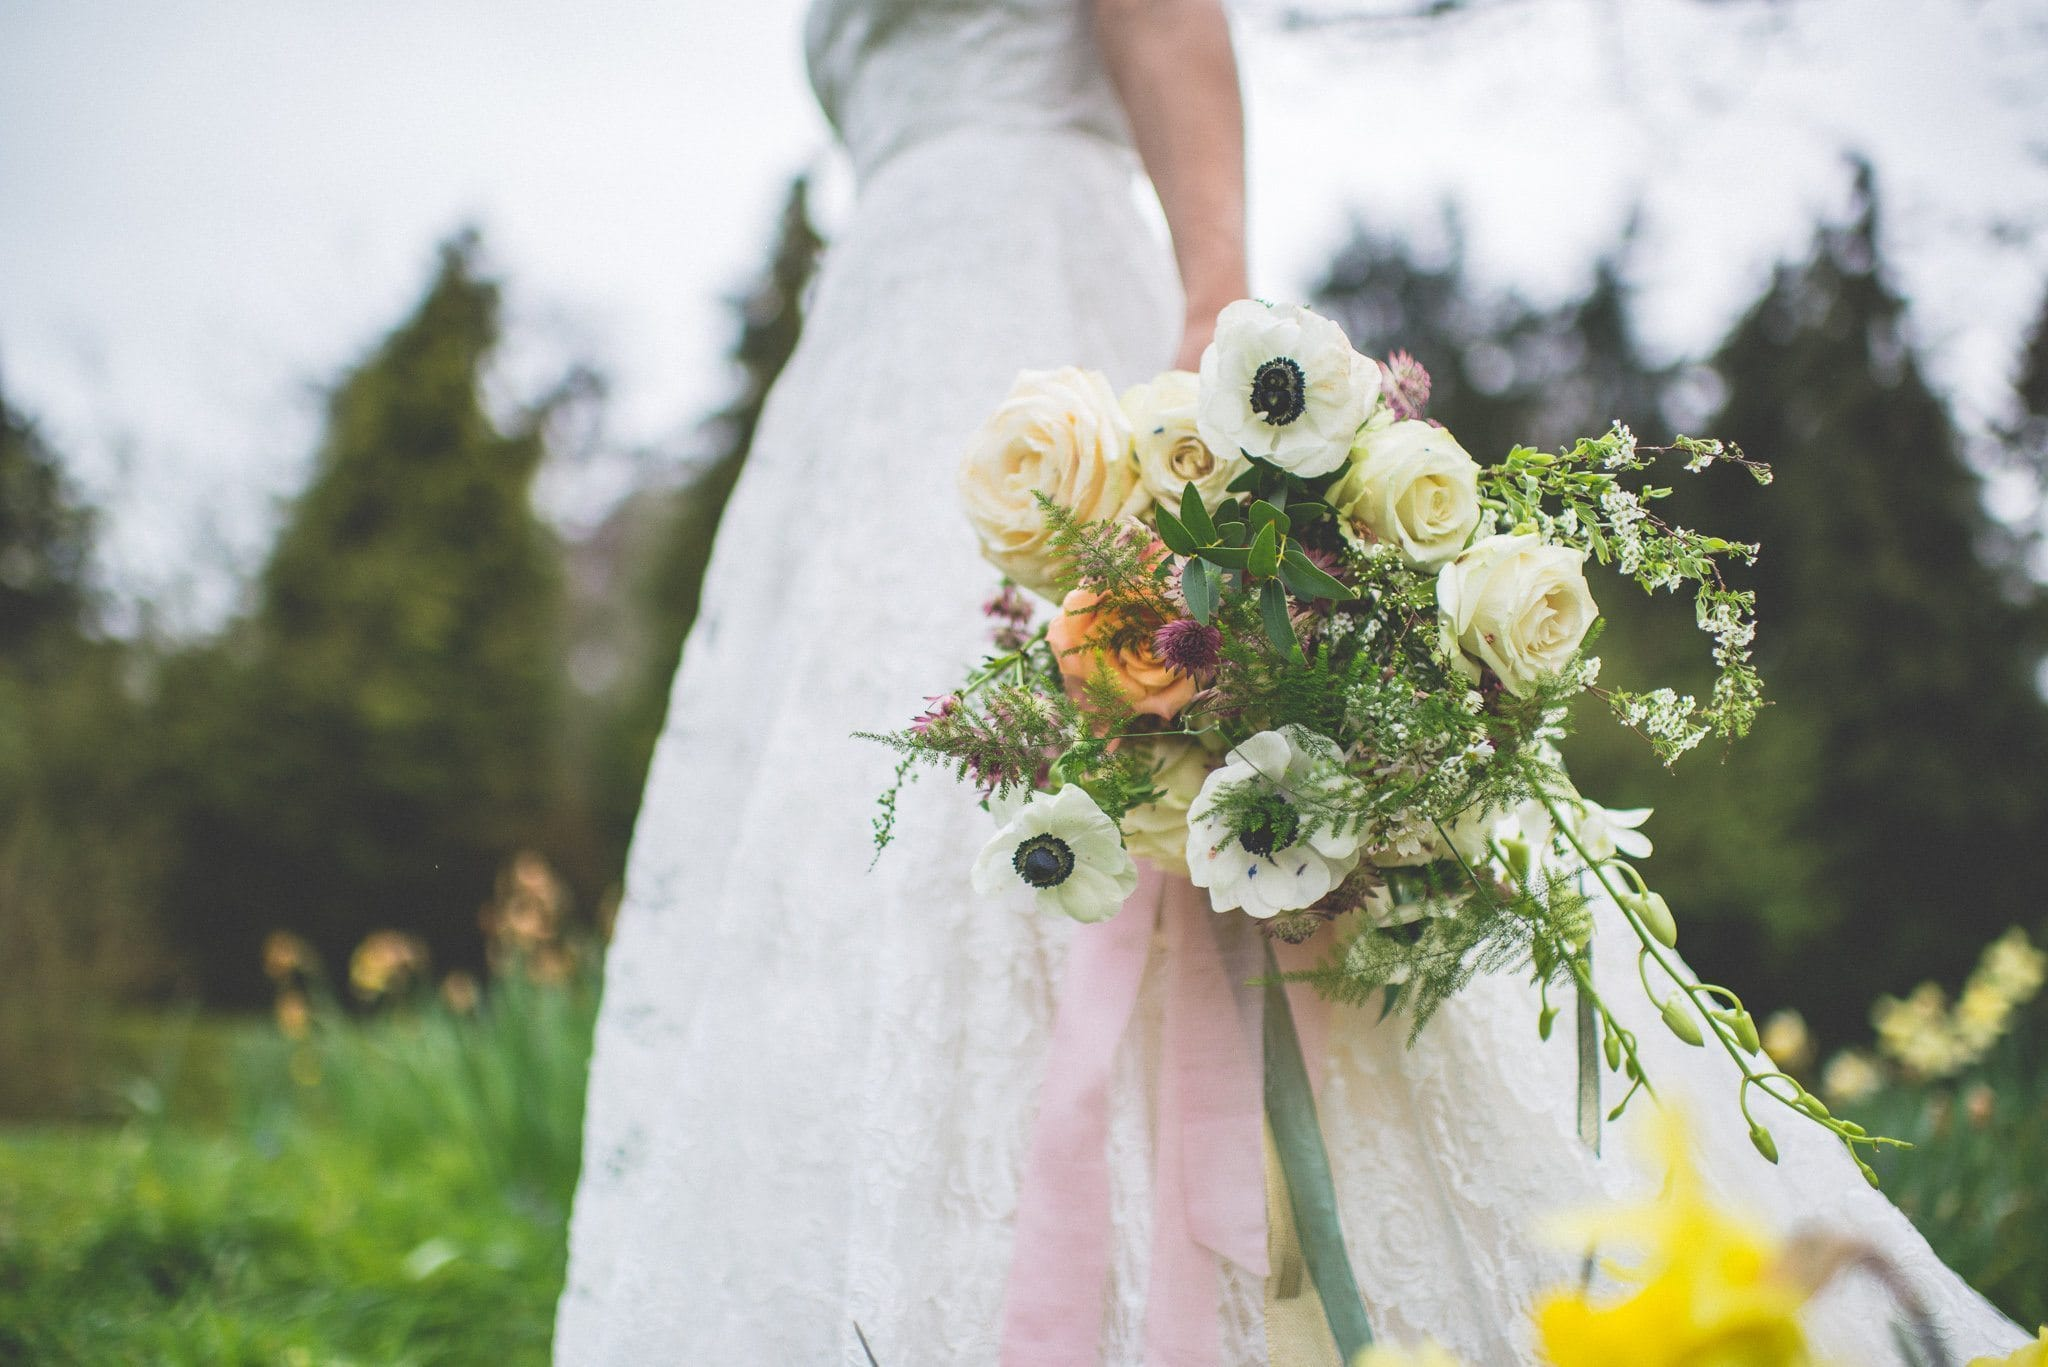 A shot looking up from the ground, and focusing on the bridal bouquet of anemones and roses, tied with pale pink, sage green and peach silk ribbon